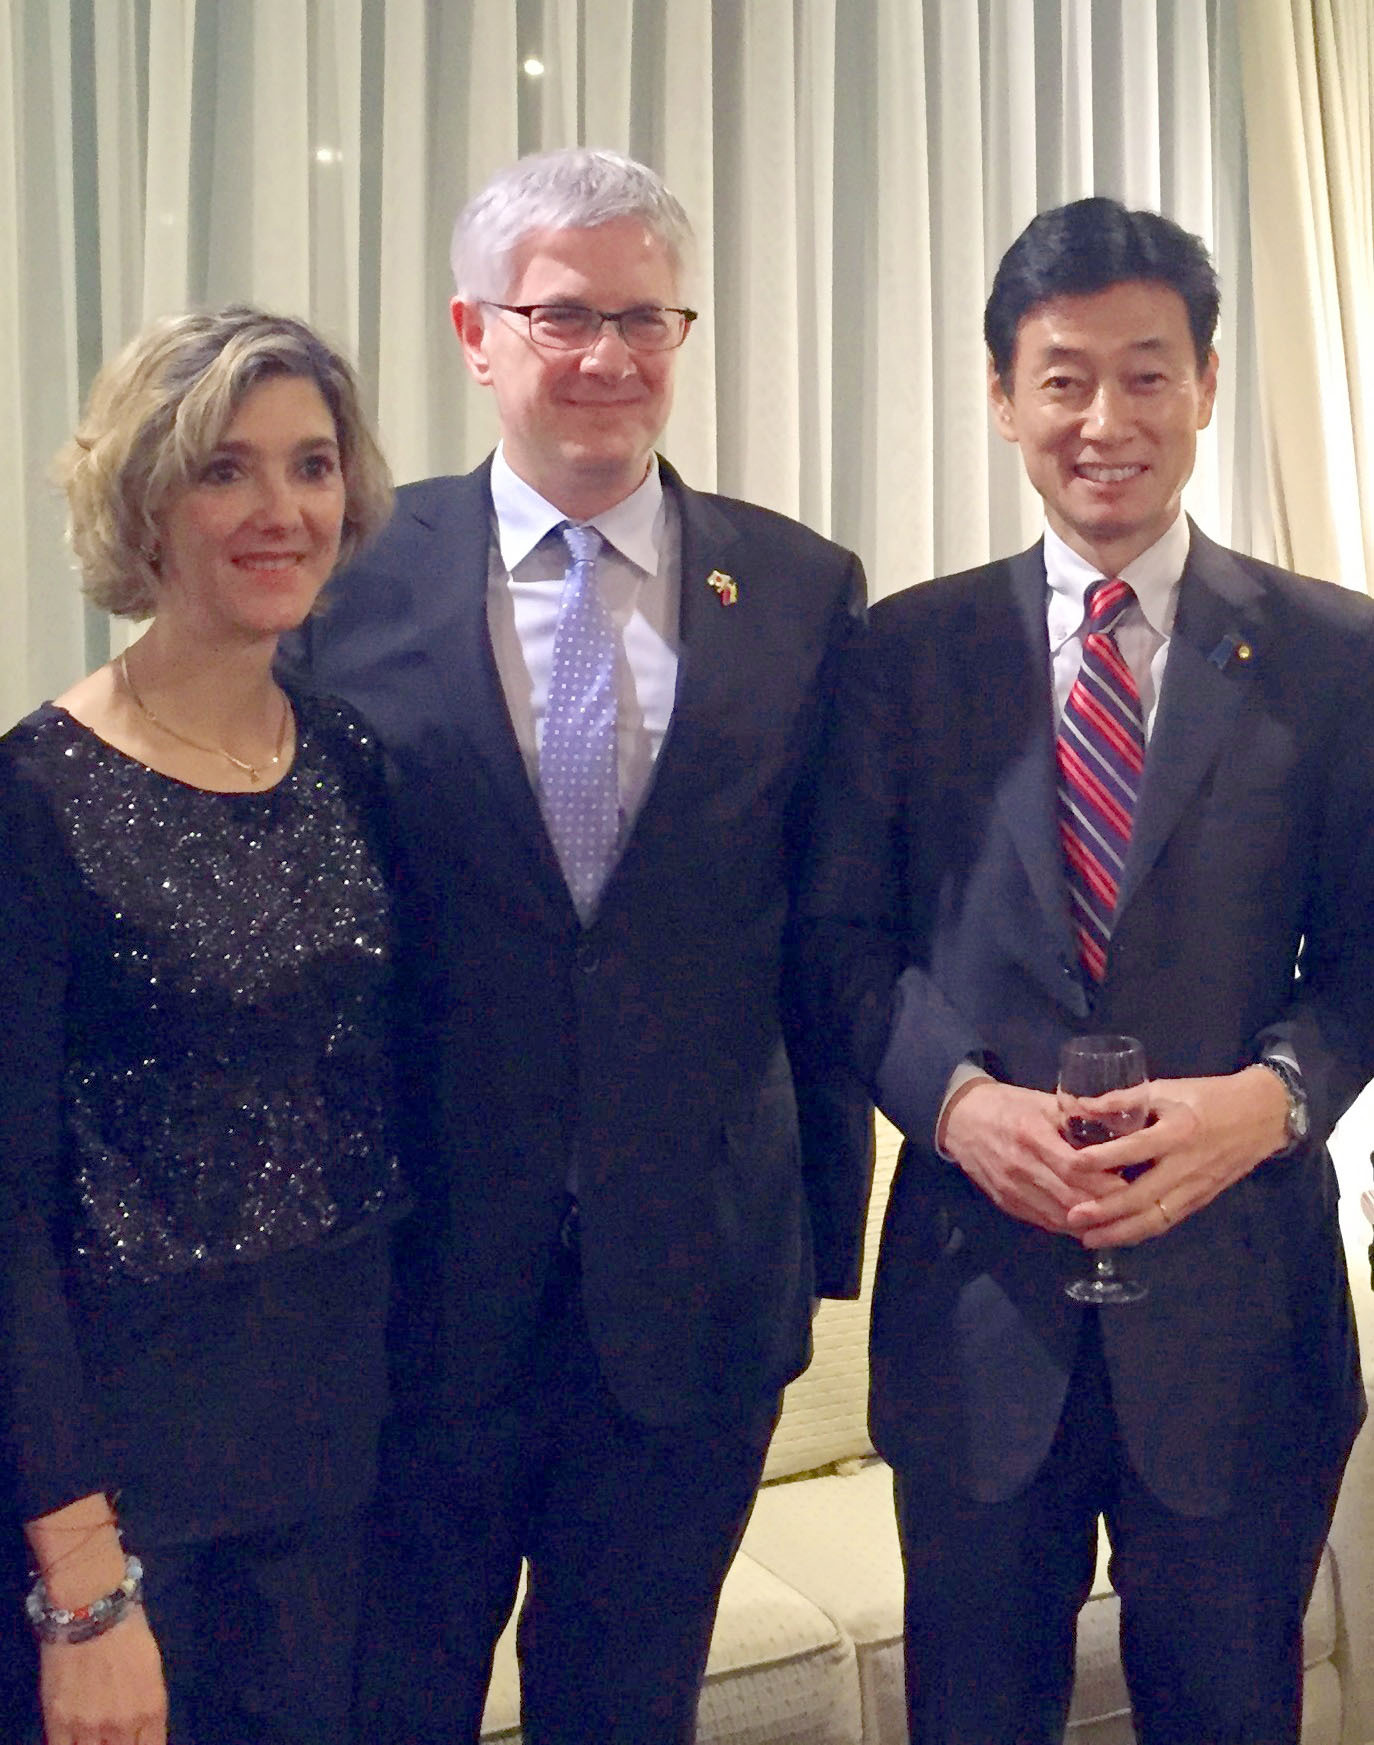 Colombian Vice Minister of Foreign Affairs Patti Londono (left) poses with Colombia's Ambassador Gabriel Duque and Vice President of the Colombia-Japan Parliamentary Friendship League Yasutoshi Nishimura at a reception at the embassy in Tokyo on Feb. 28.   COLOMBIAN EMBASSY